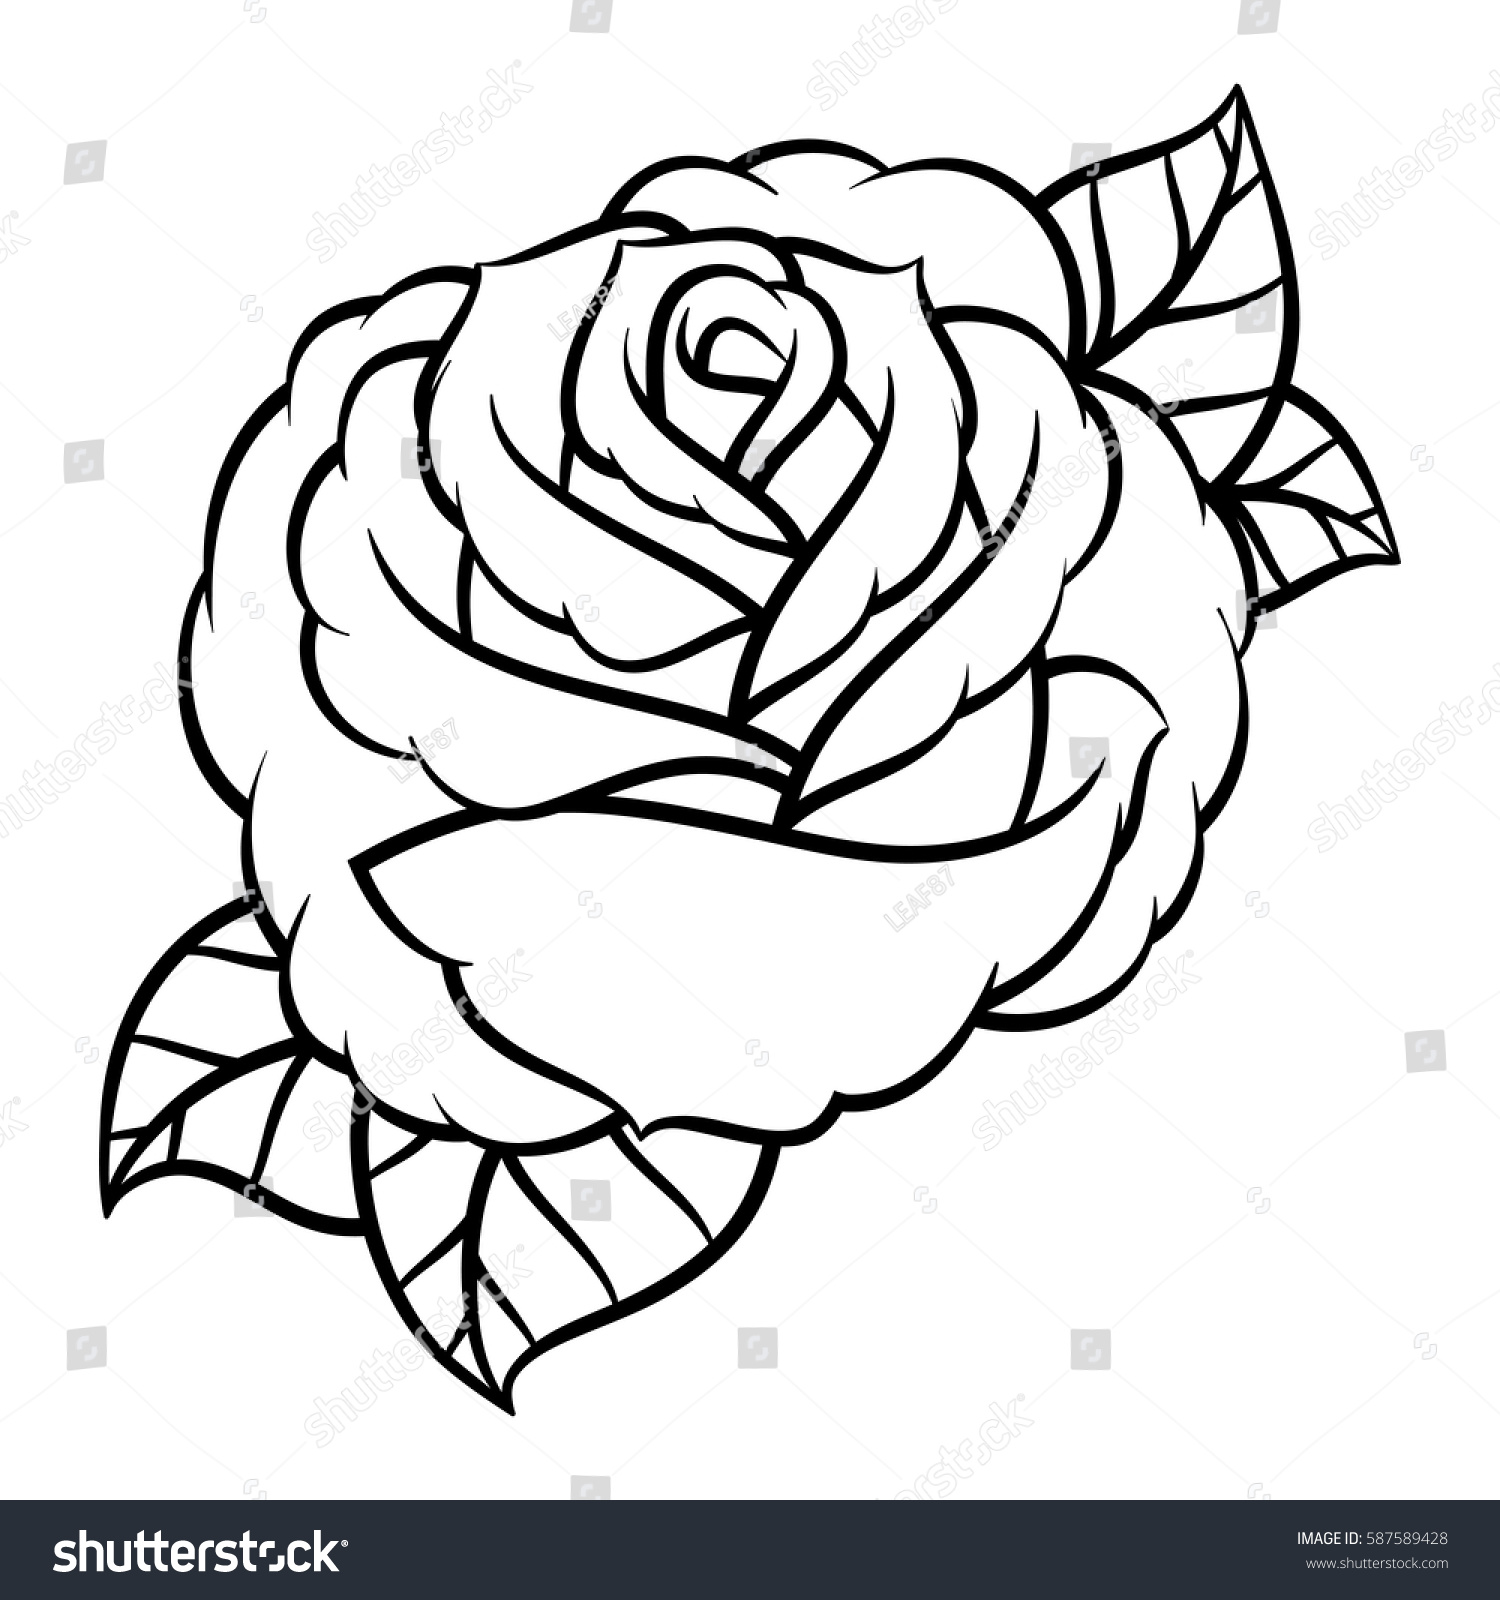 Flower Rose Black White Isolated On Stock Vector Royalty Free